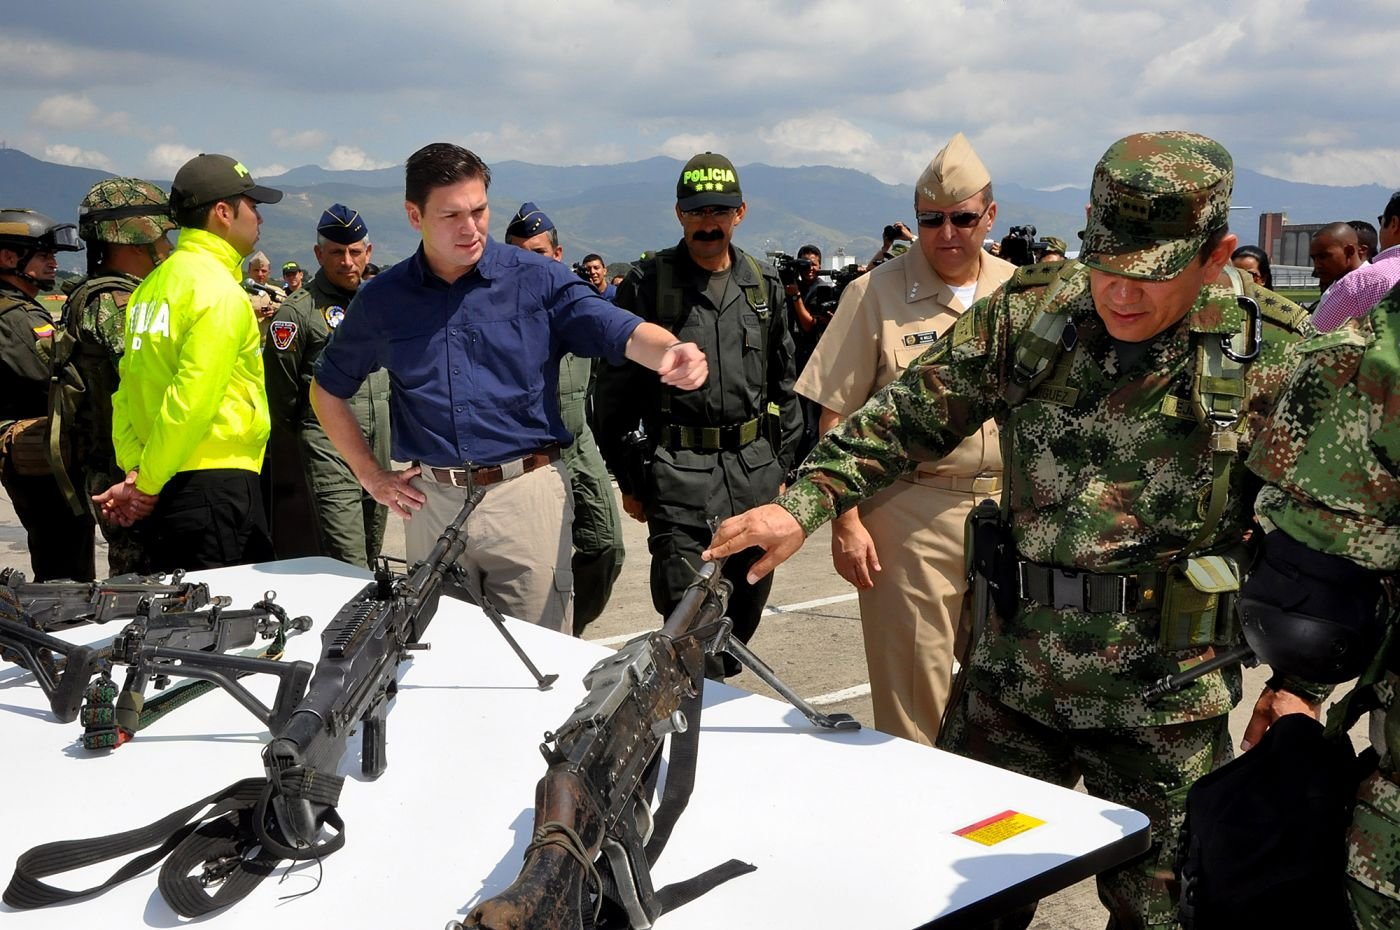 Colombia's Military, National Police, and Judiciary Improve Public Safety